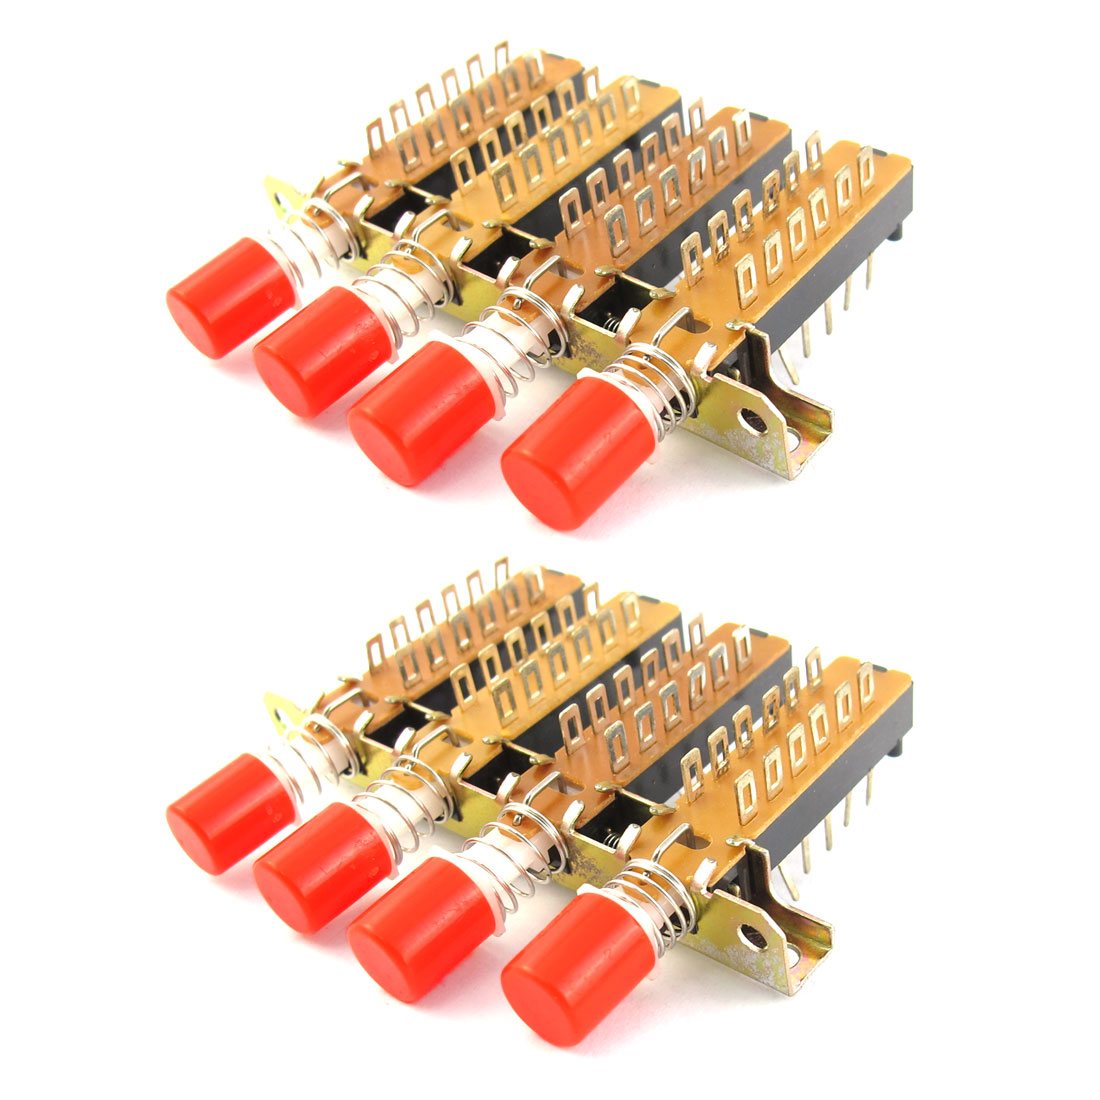 UXCELL 2pcs AC 220V 3A 4P2T 4 Rows Interlock Push Button Knob Piano Key Switch image